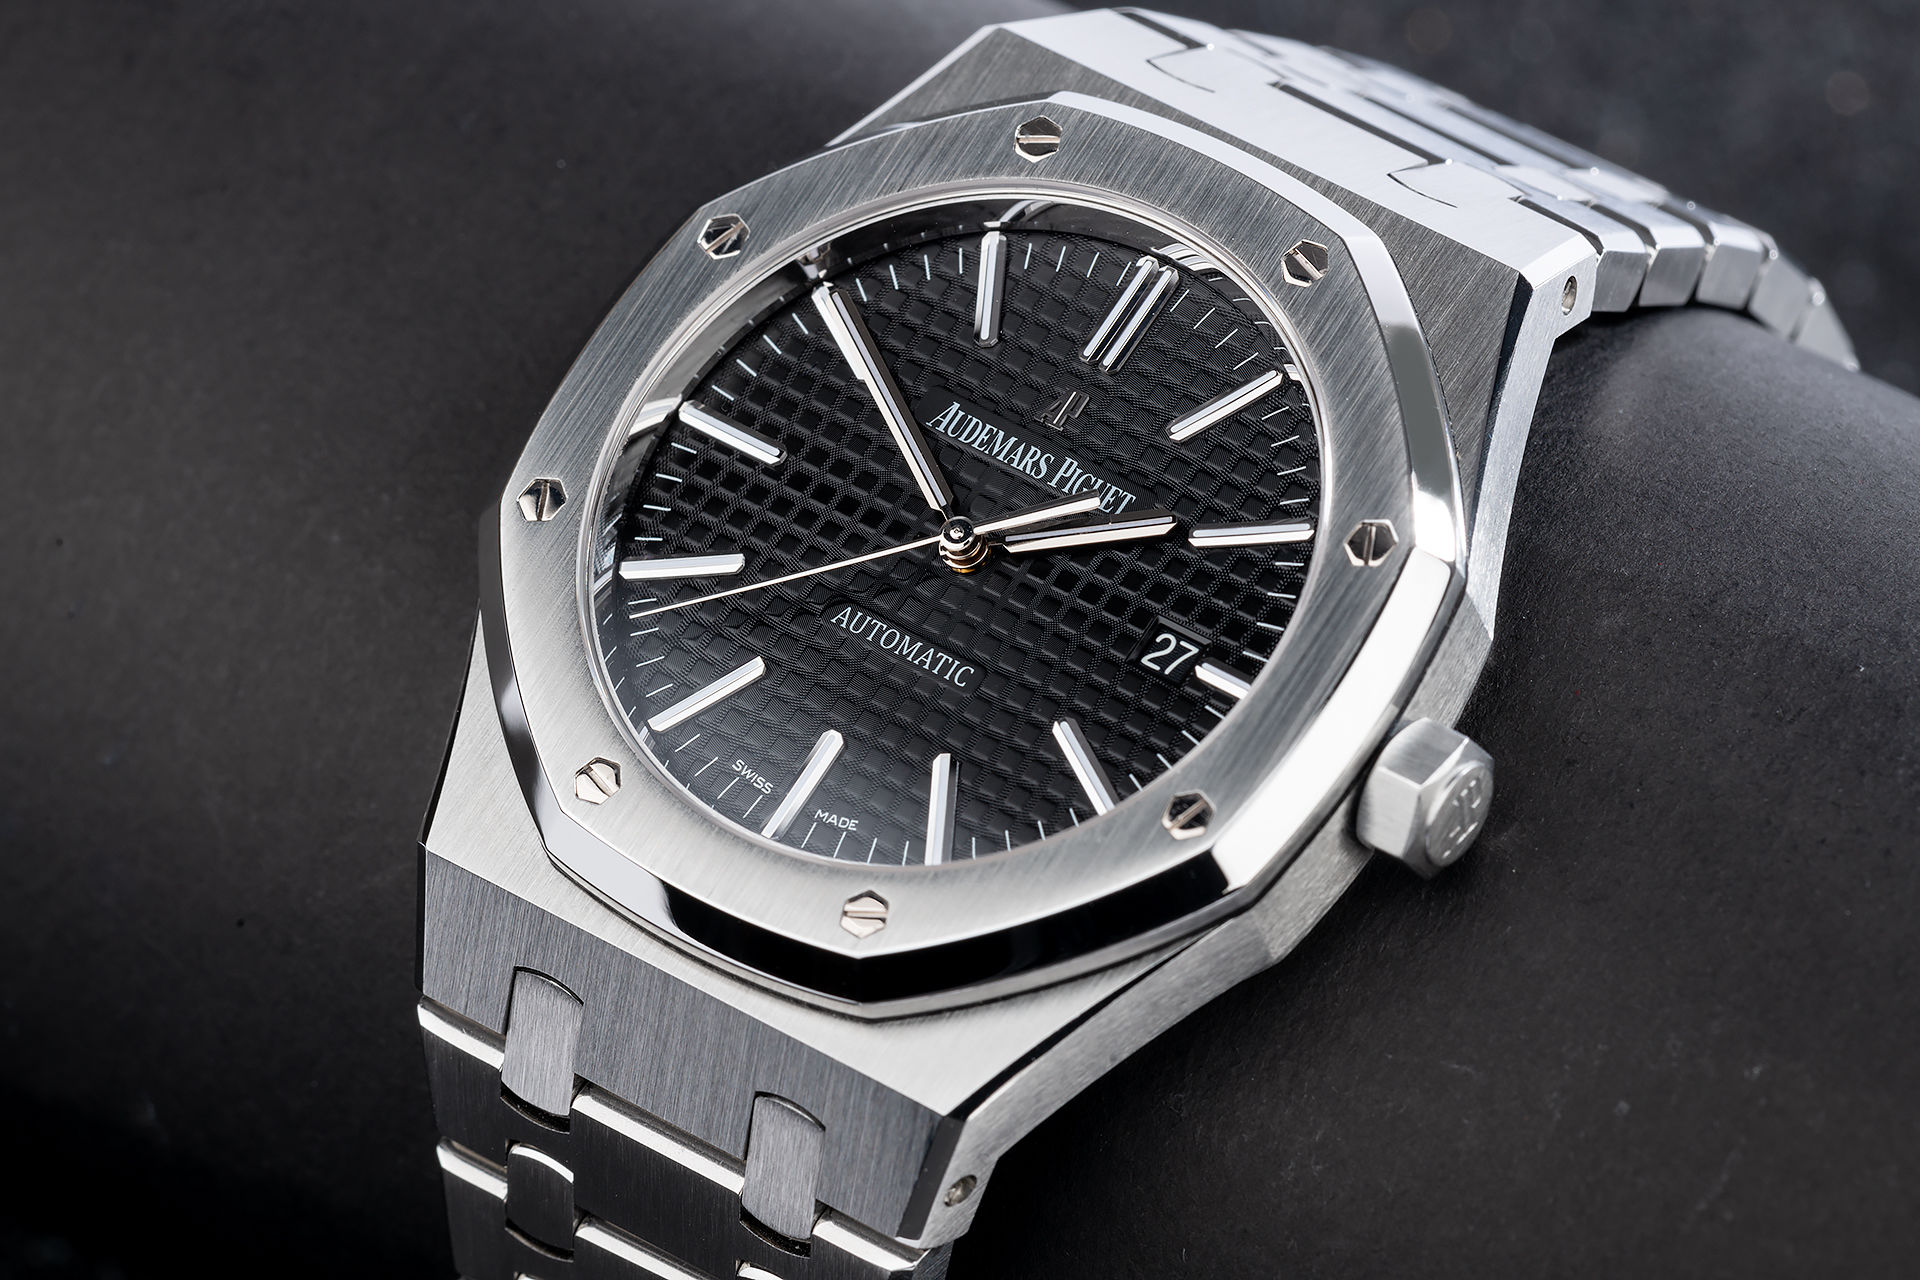 ref 15400ST.OO.1220ST.01 | Box & Certificate | Audemars Piguet Royal Oak